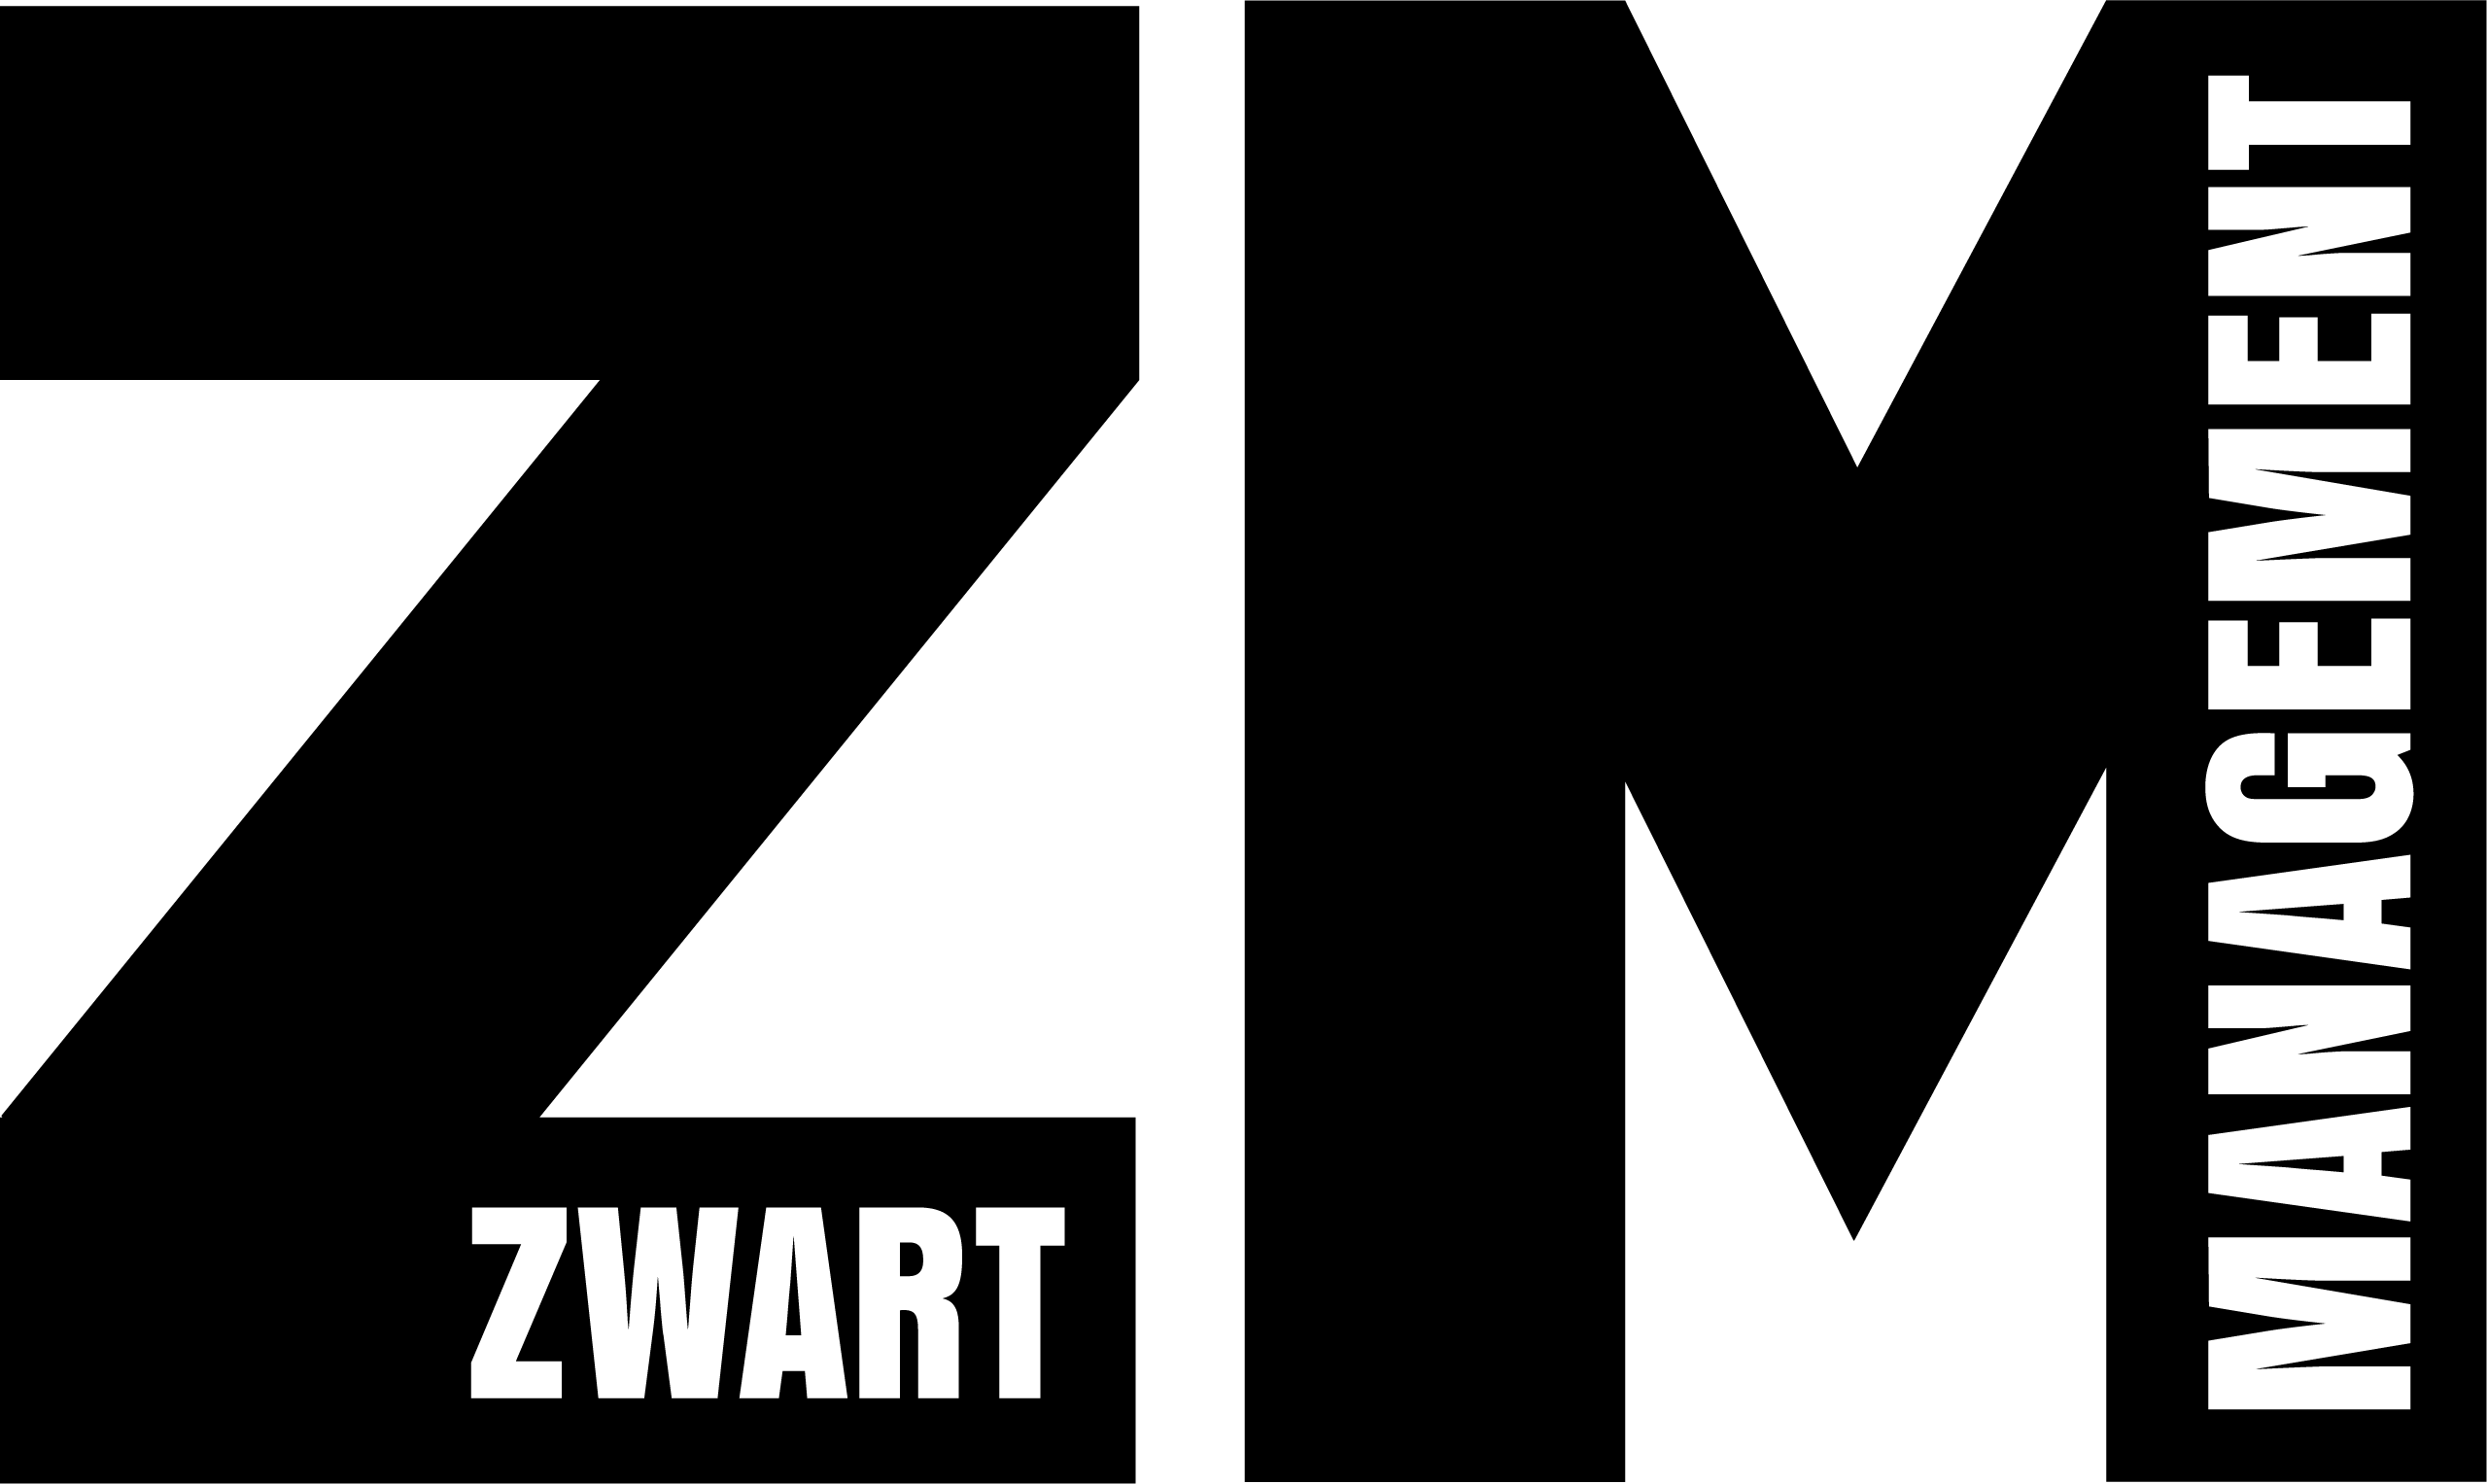 Zwart management